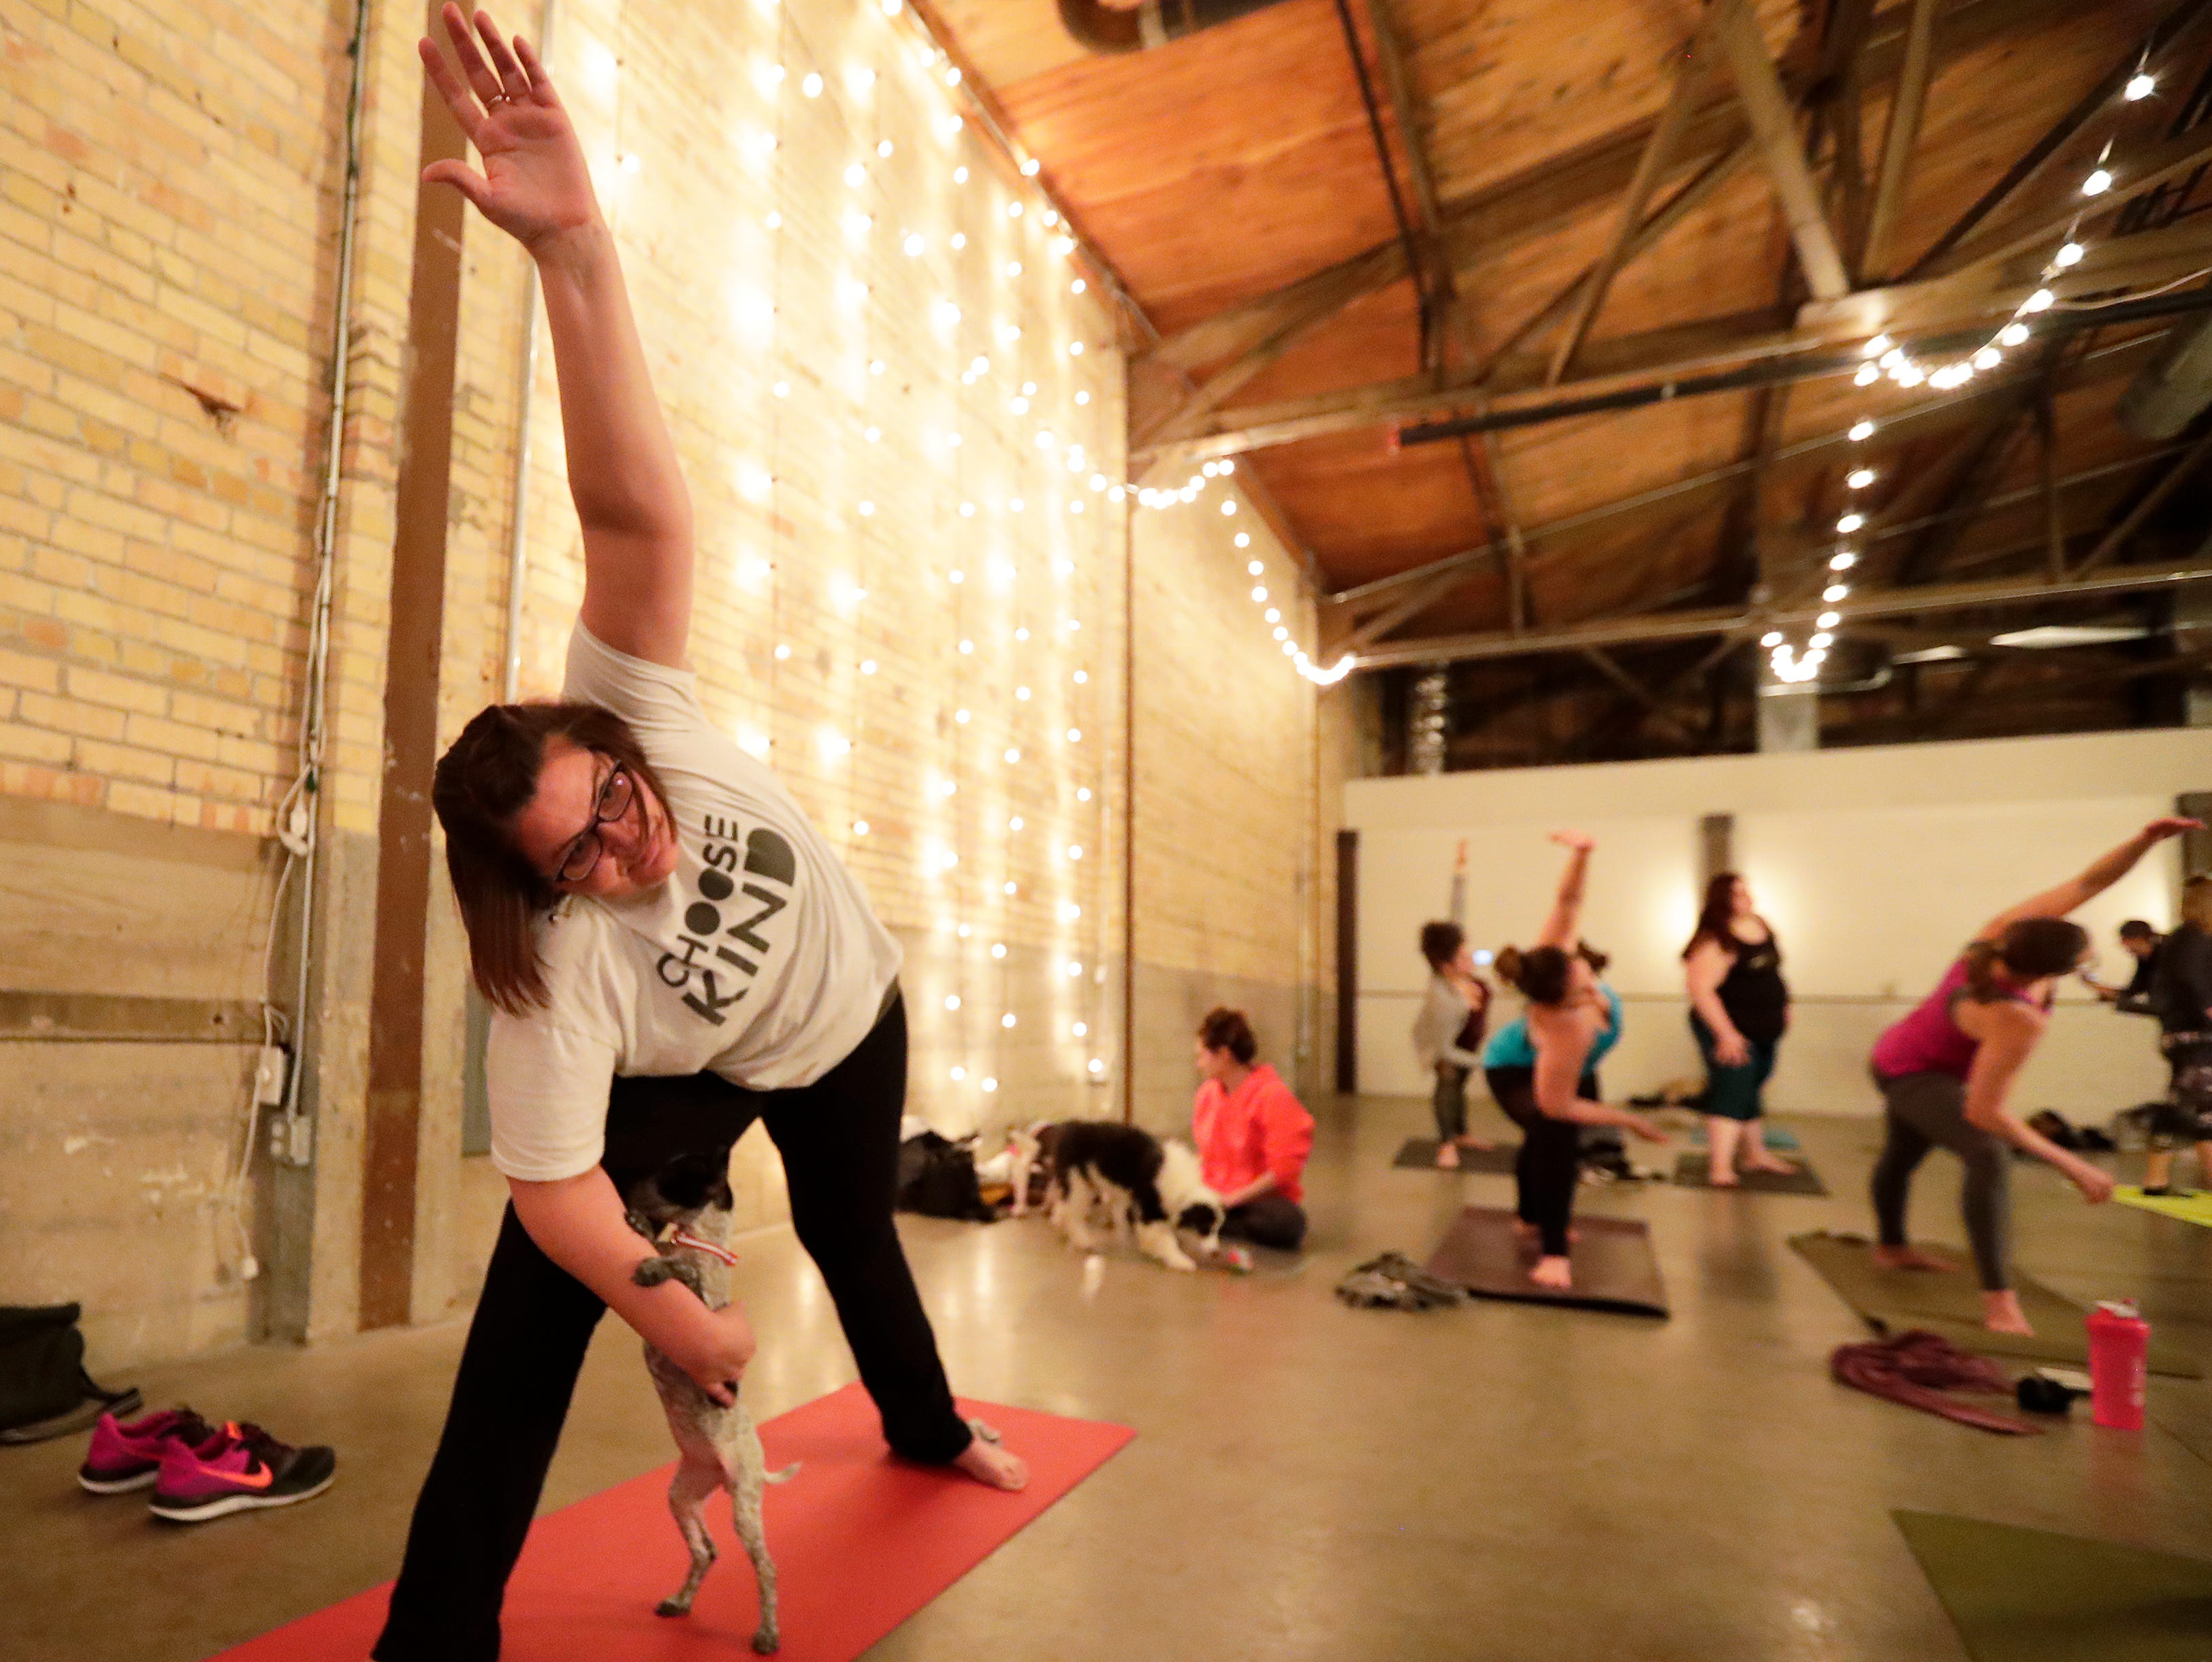 Puppies from Lucky 7 Dog Rescue interact with people during a Yoga With Puppies class at Gather on Broadway on Wednesday, January 9, 2019 in Green Bay, Wis.